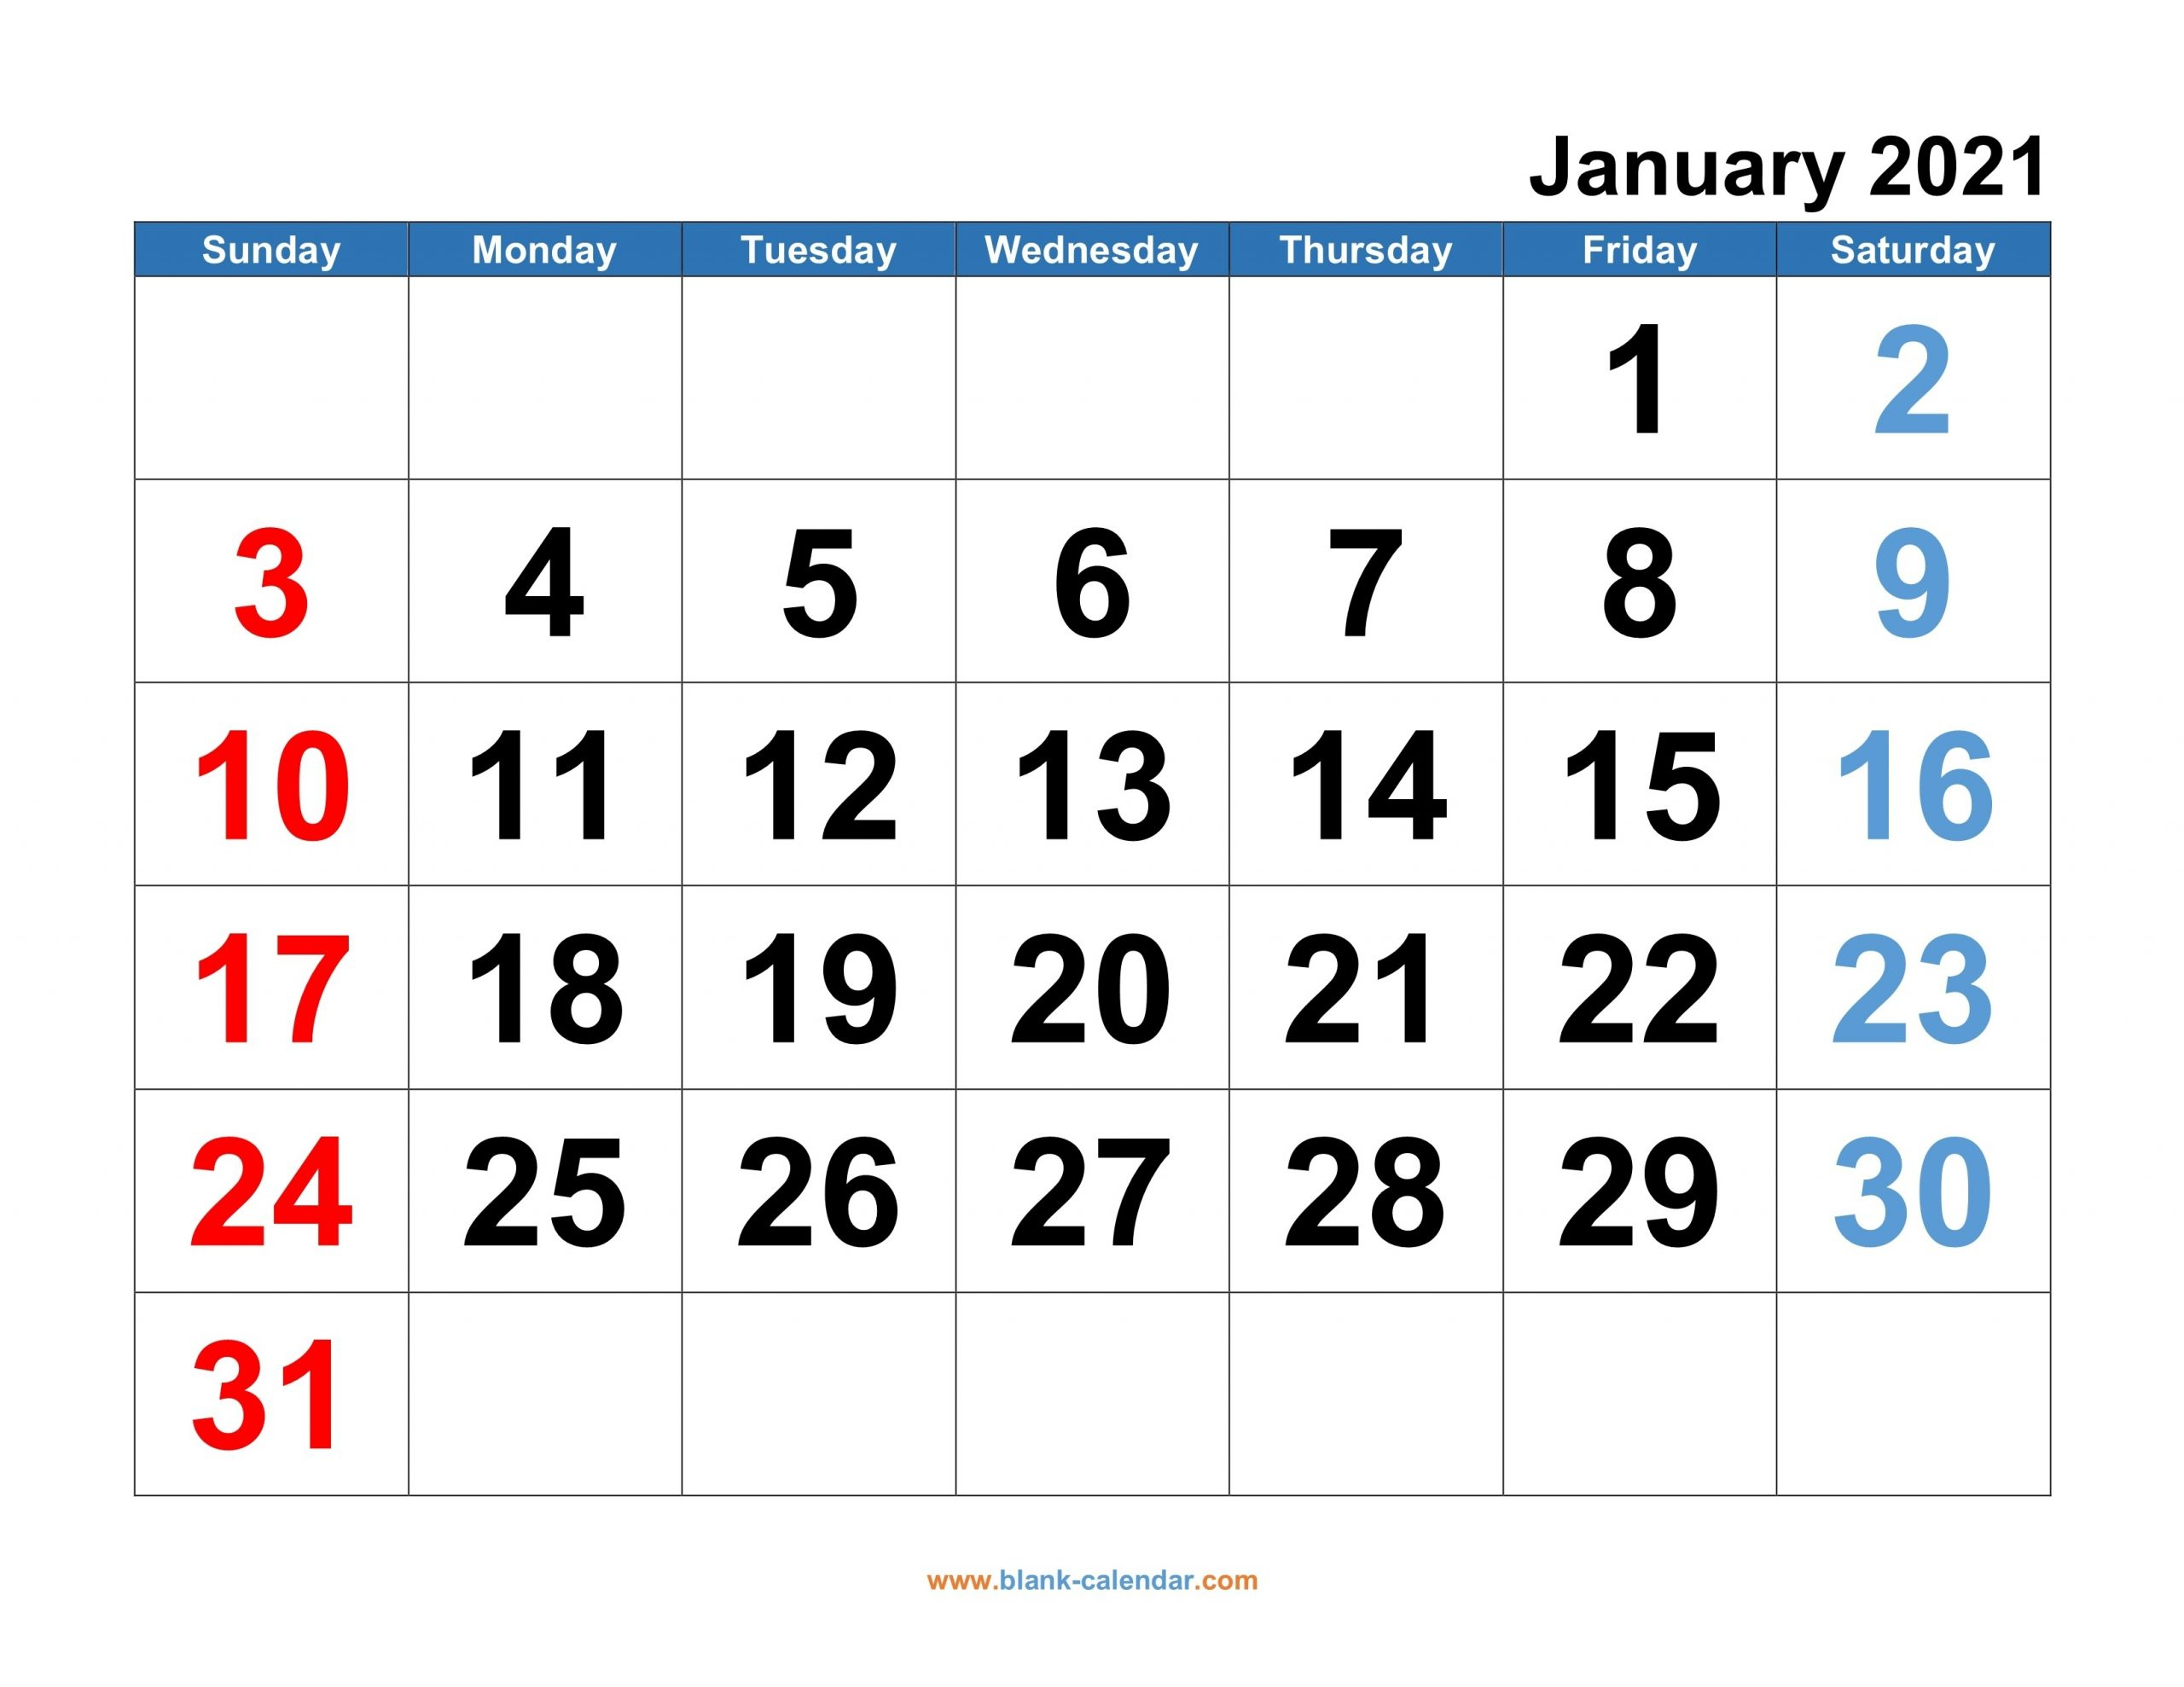 Microsoft Calendar Templates 2021 2 Page Per Month intended for Desktop Calendars 2021 Free Printable